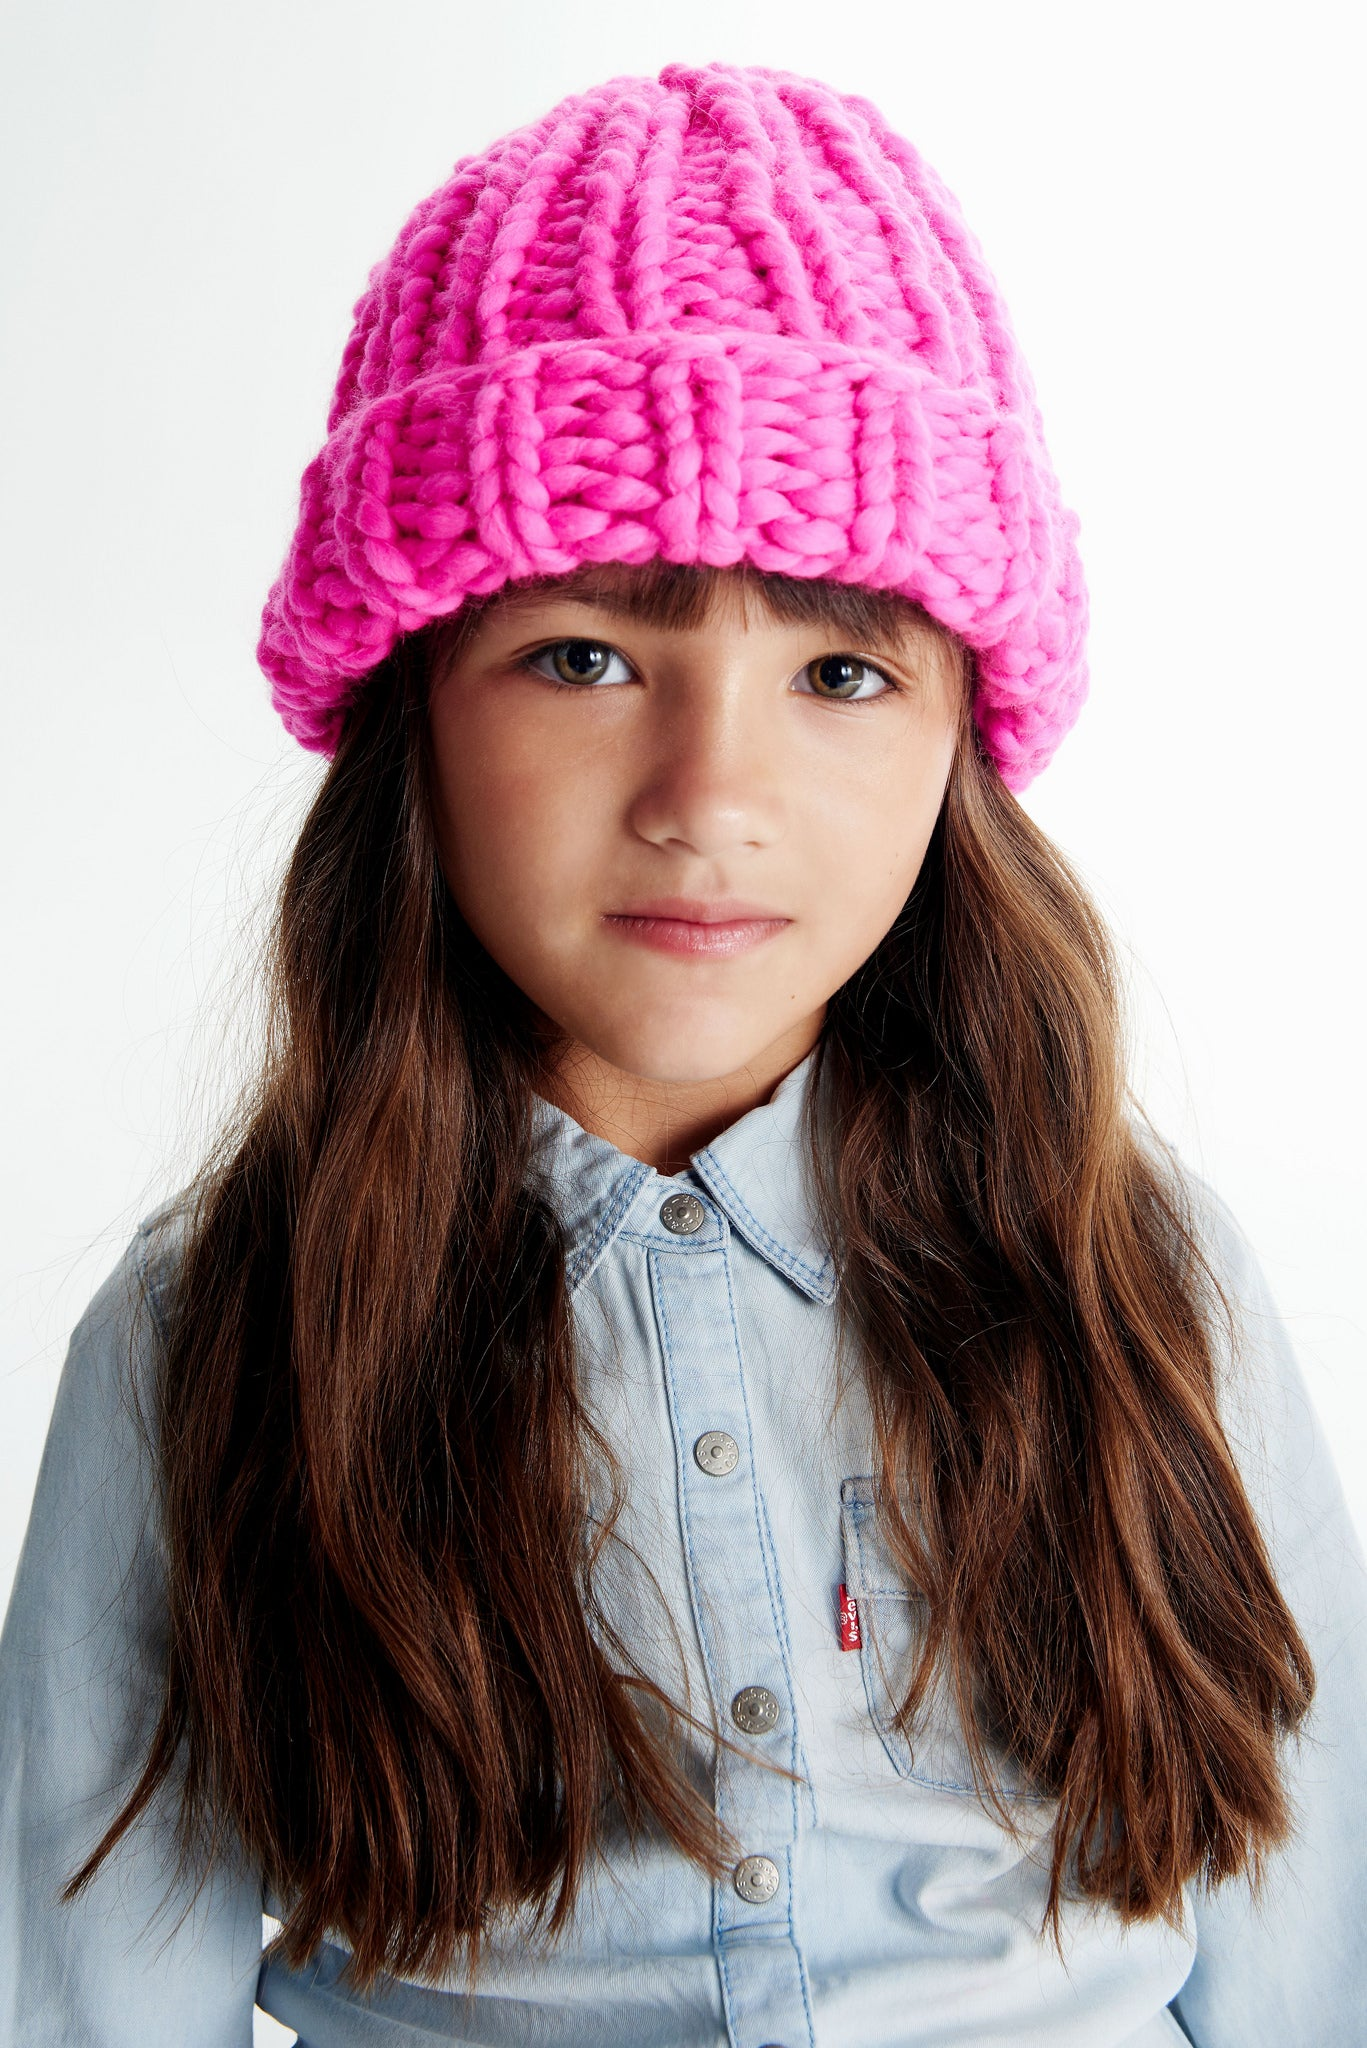 Mini Beanie 5-8 years - Merino